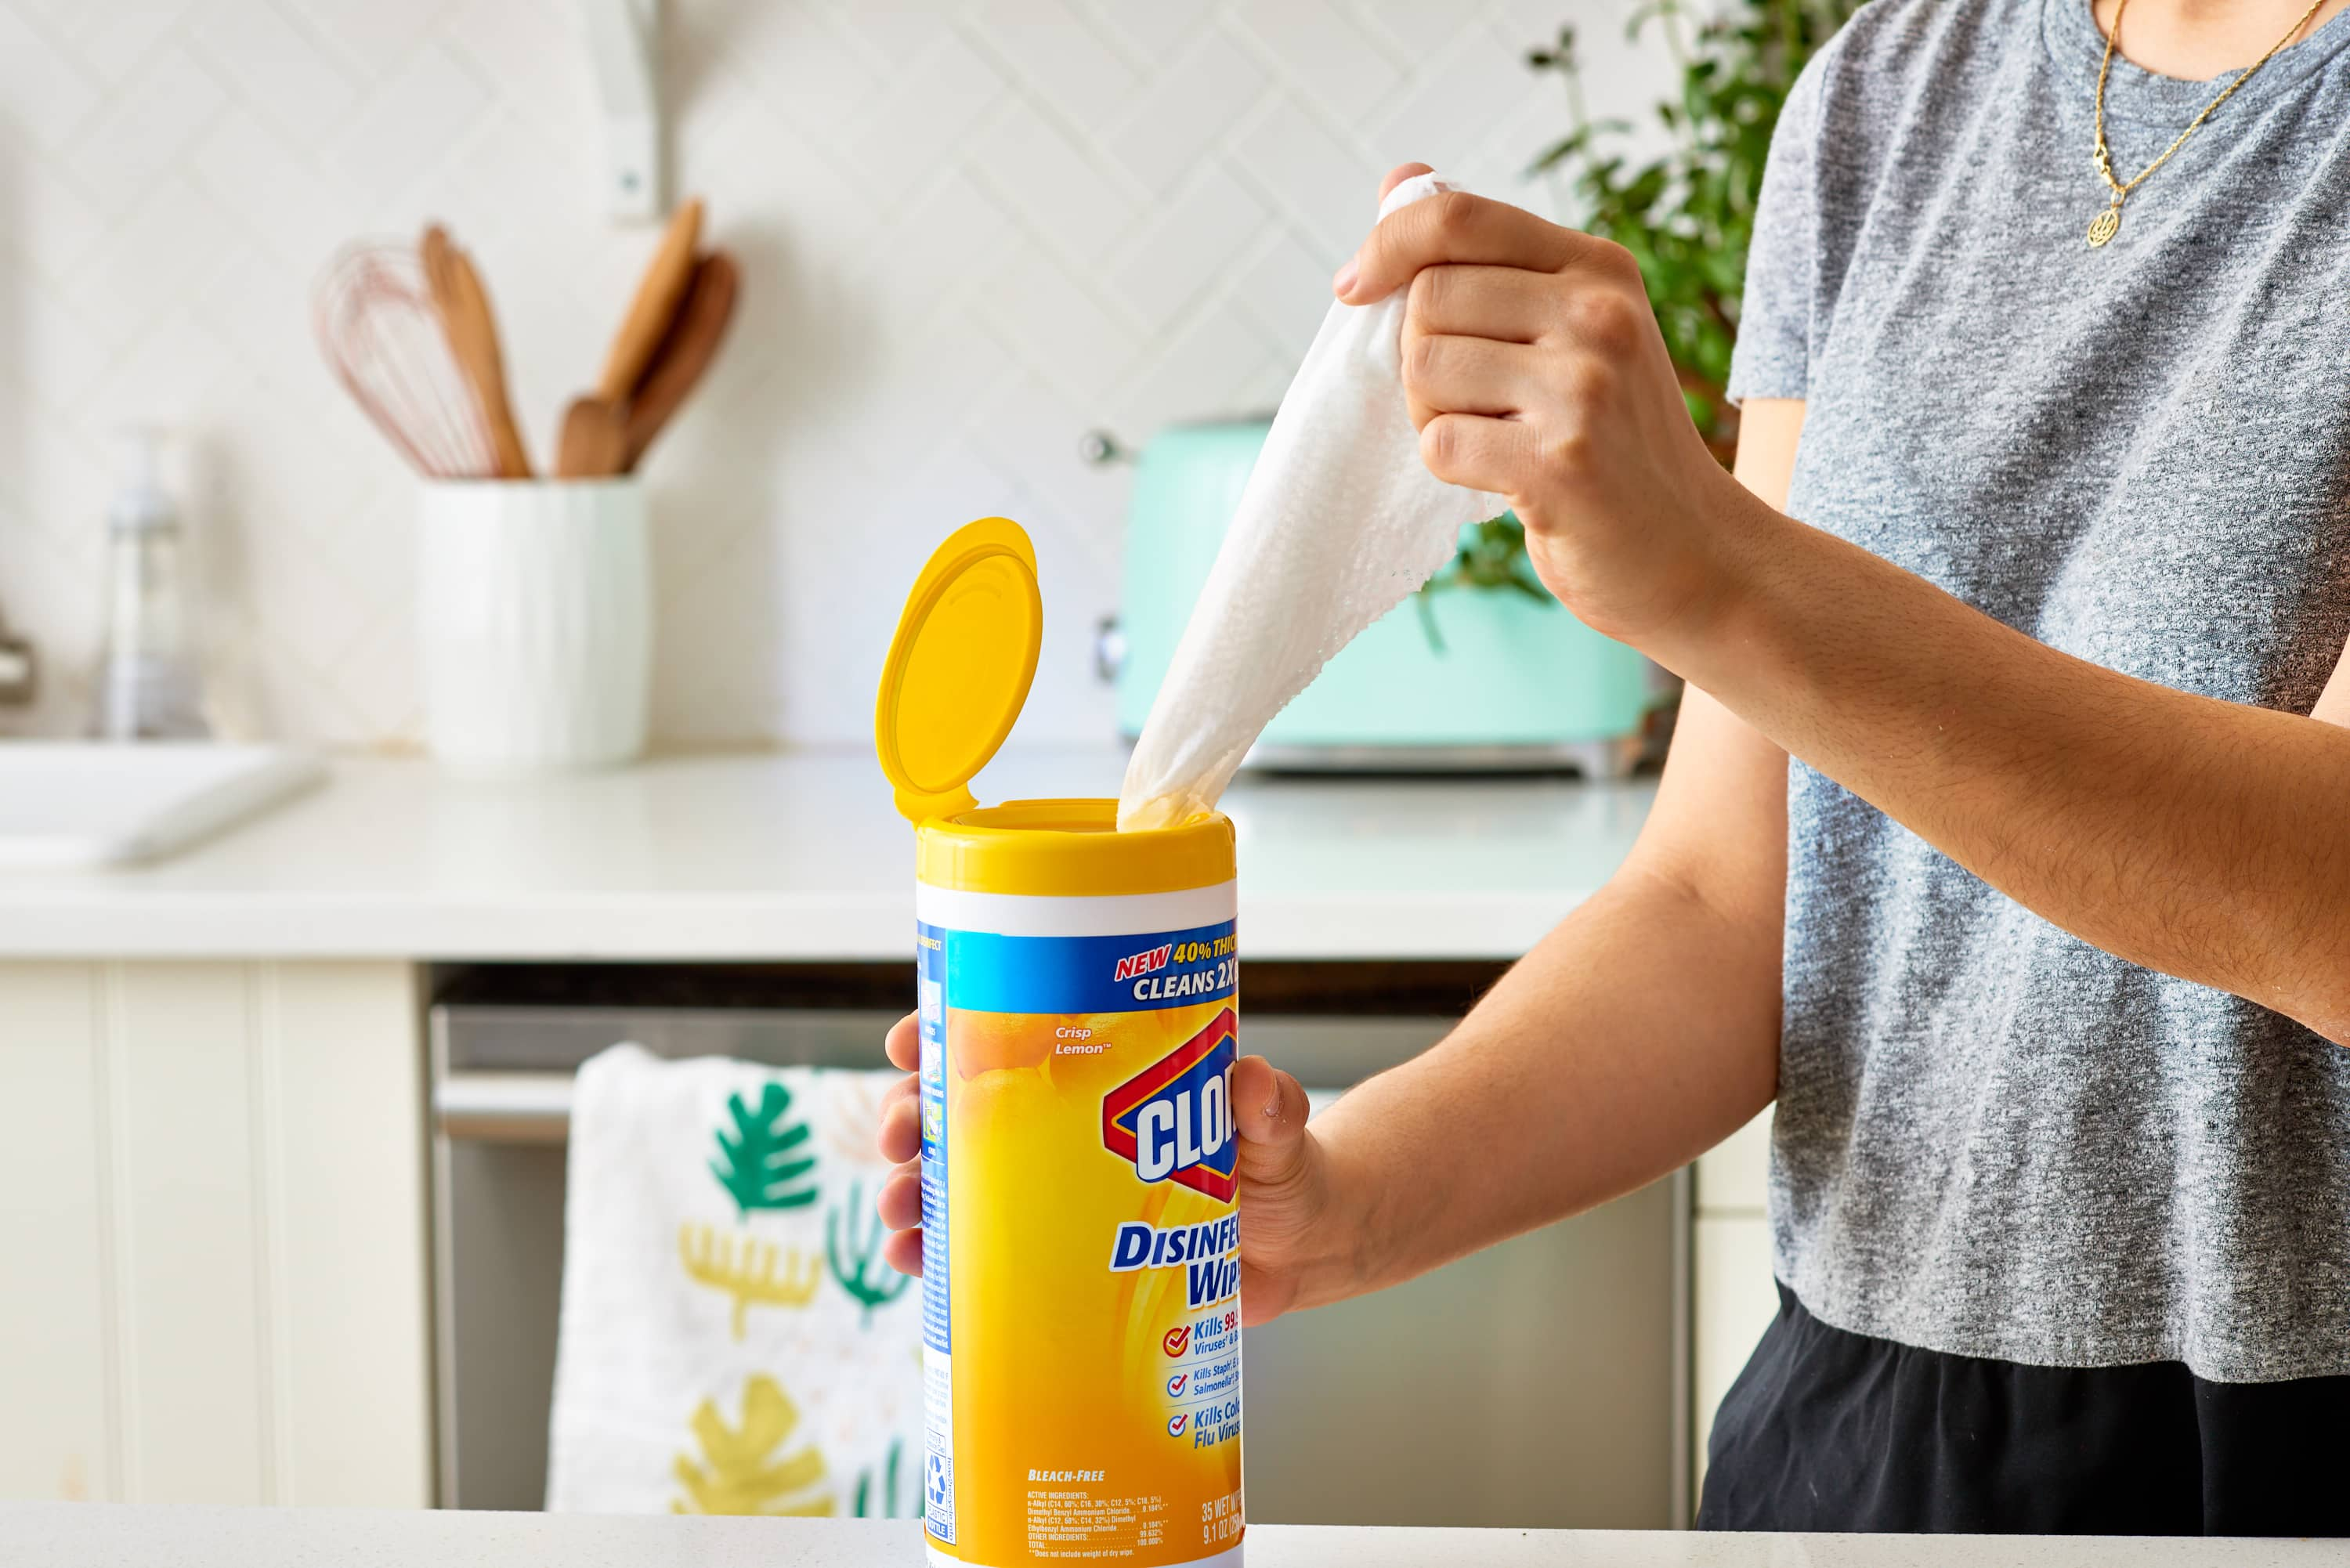 What Surfaces Can You Use Clorox Wipes On?